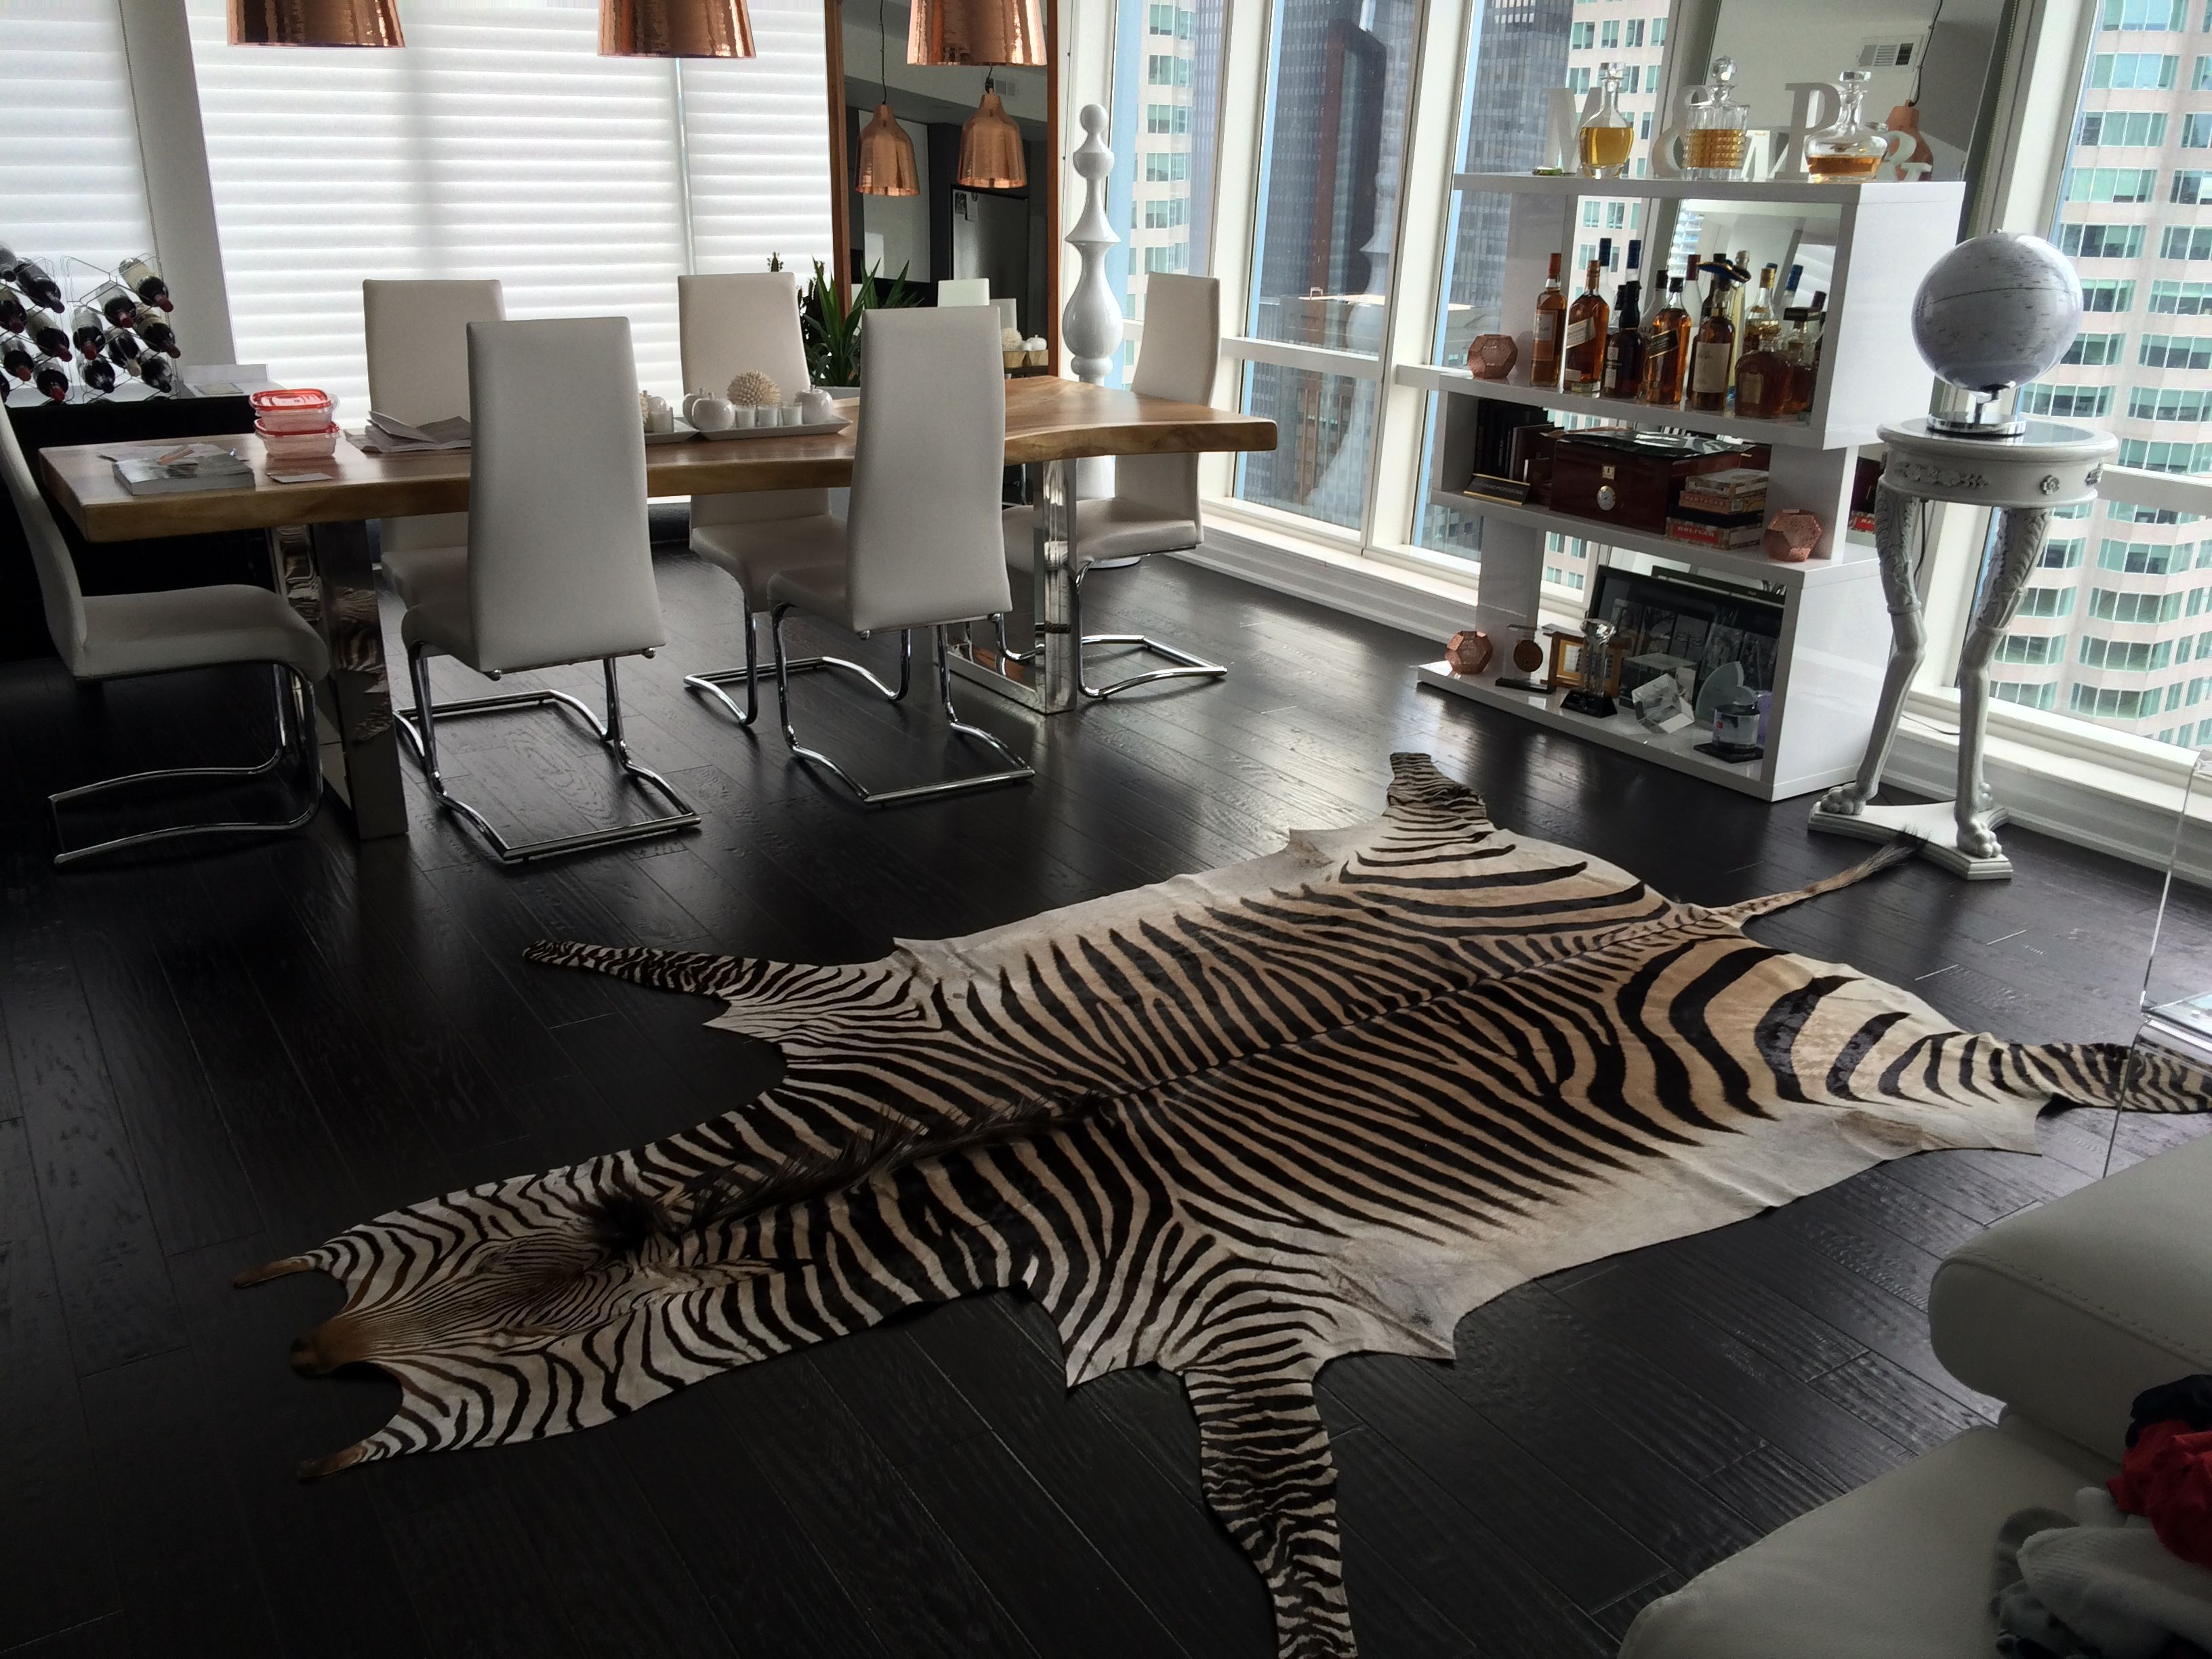 Real Zebra Skin Rug Can Change A Room Thanks To Our Toronto Client For Sharing This Photo With Cowhidesusa Faux Sheepskin Rug Zebra Skin Rug Sheepskin Rug